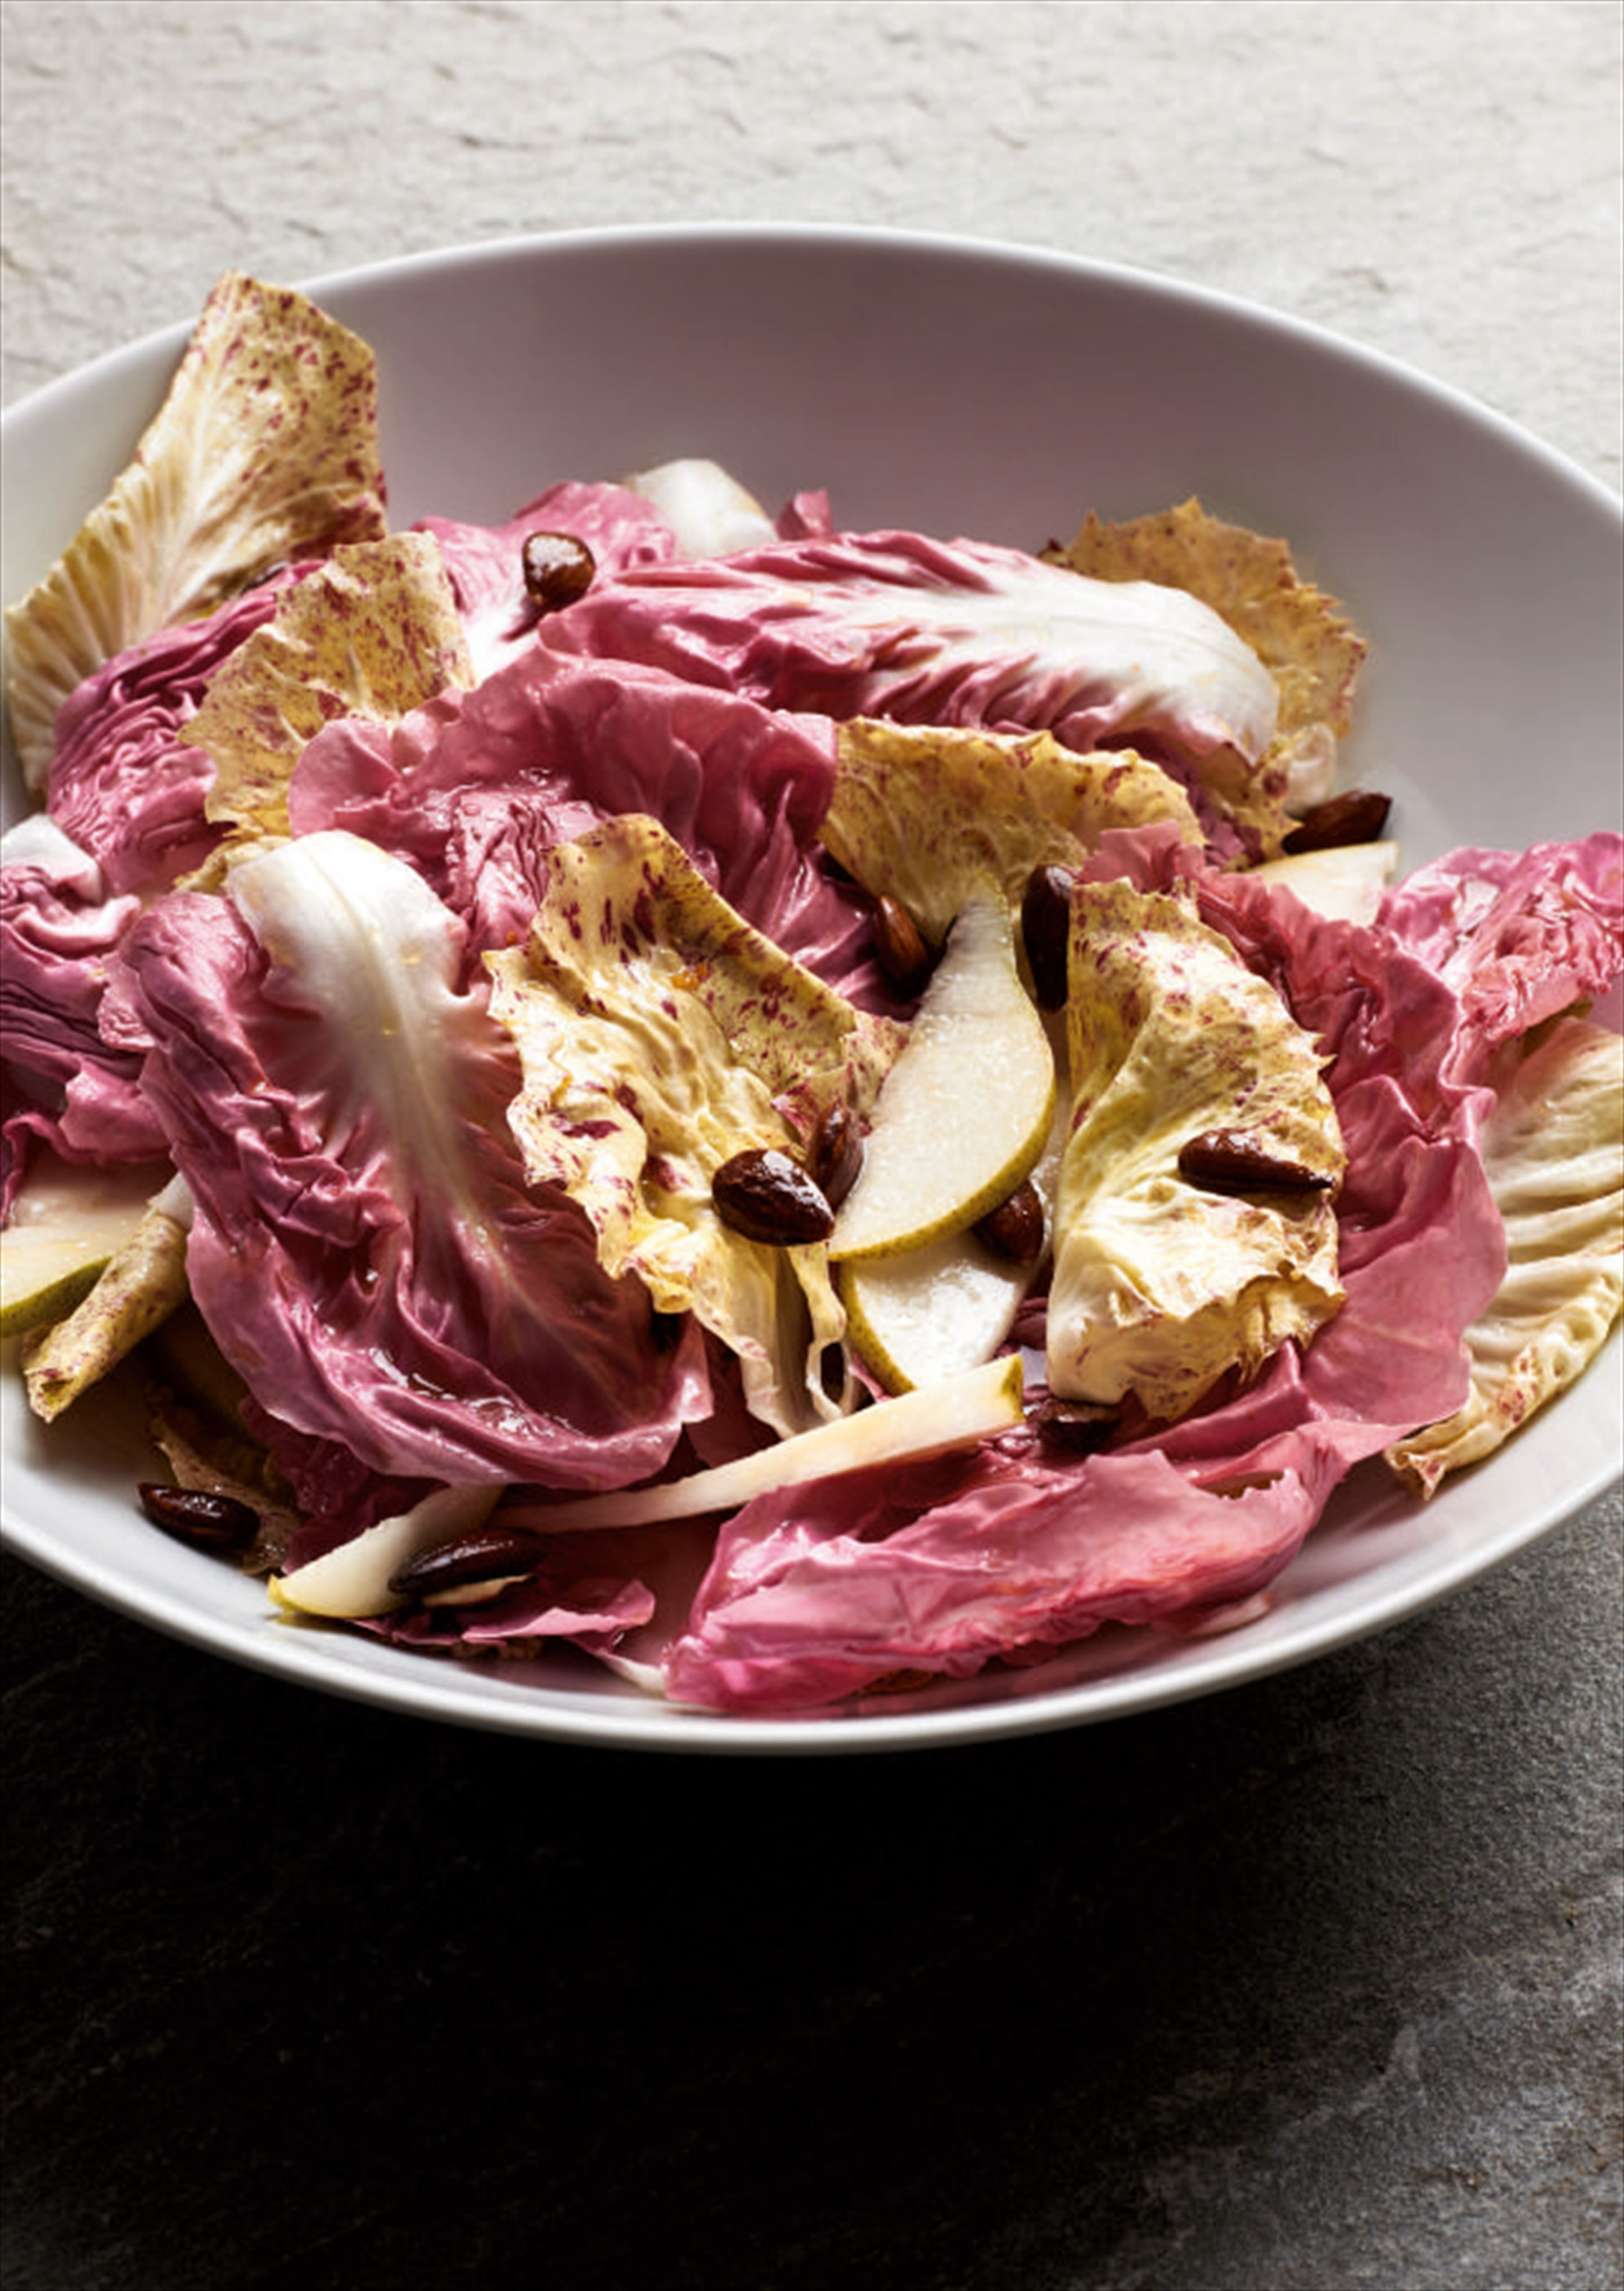 Pink radicchio with pear and almonds